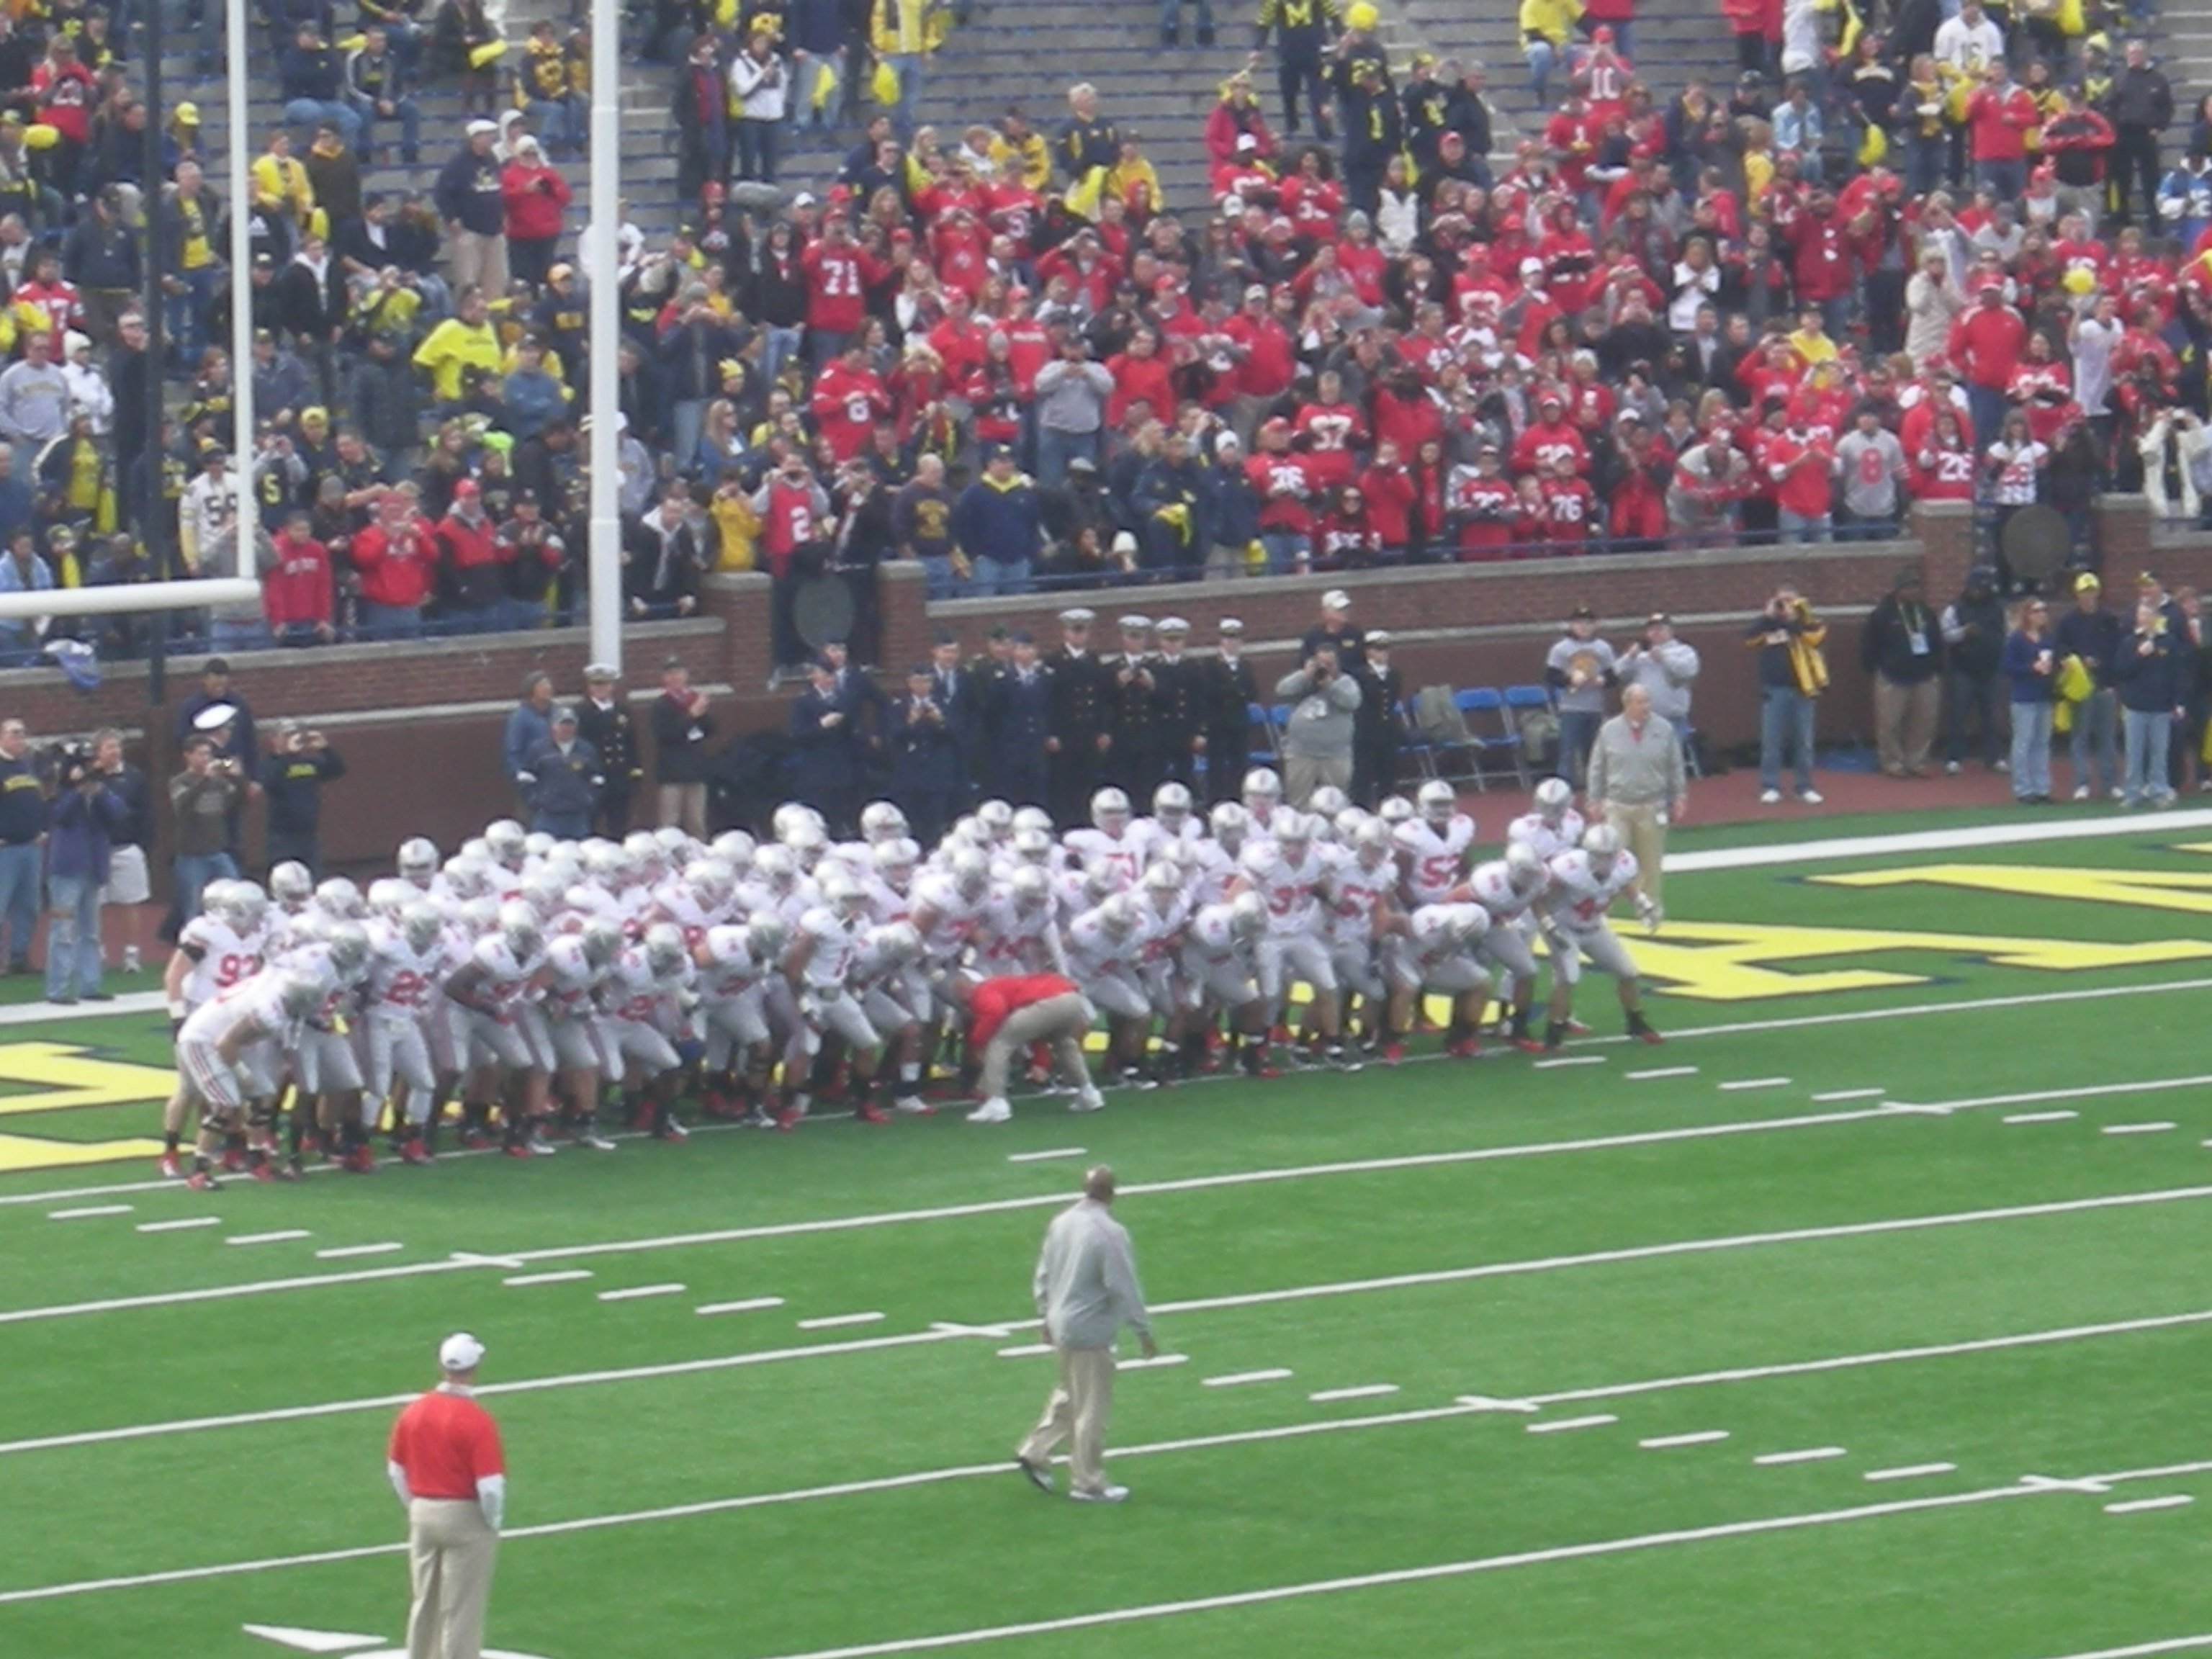 Ohio State Buckeyes football team